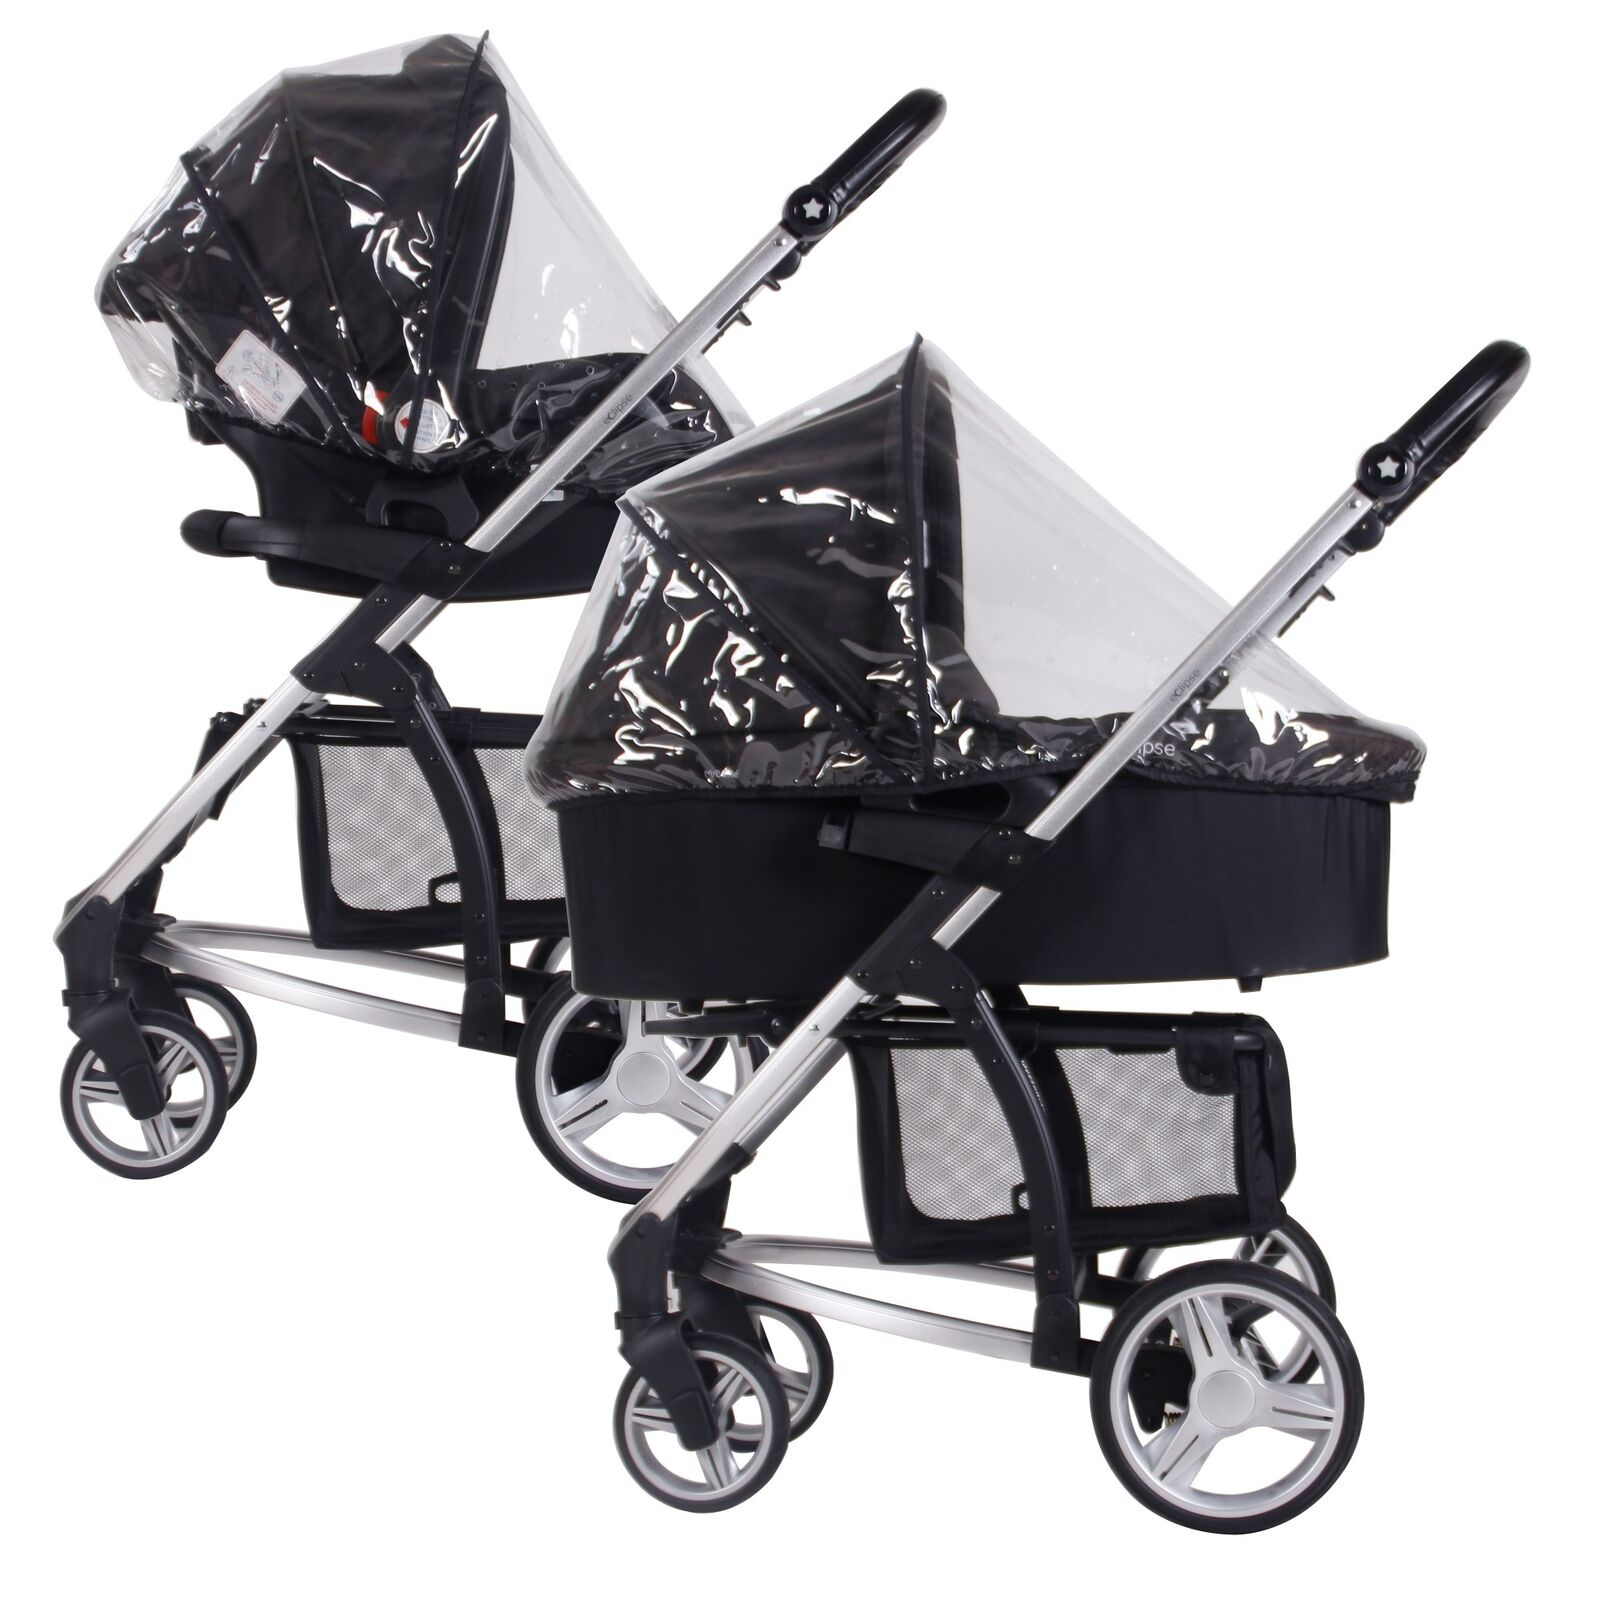 Brand new Kiddycover universal raincover for icandy peach or similar pushchair